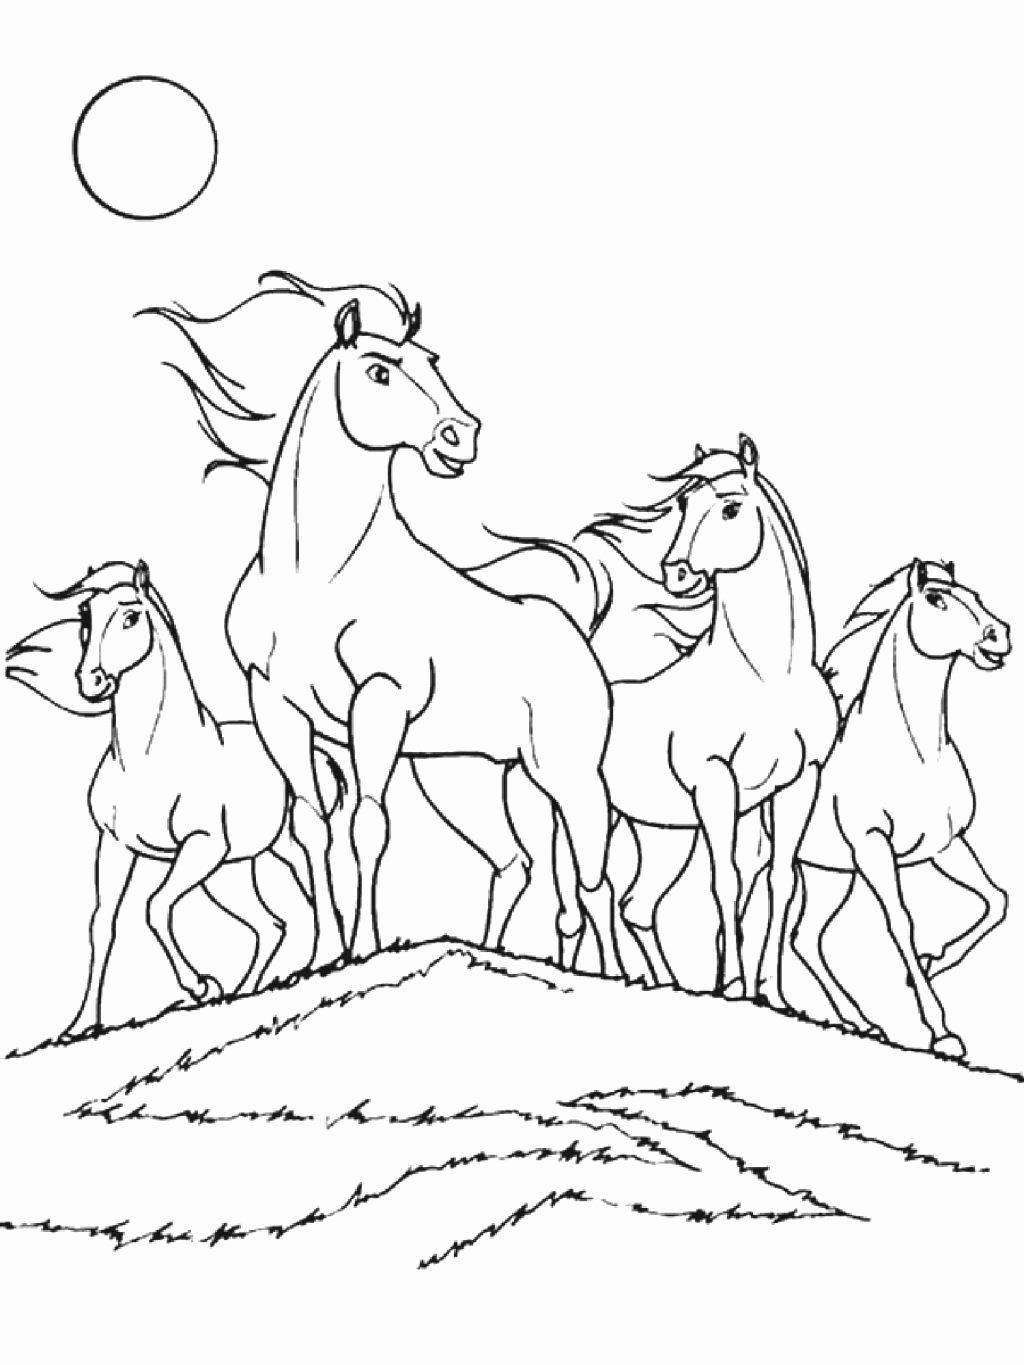 Spiritual Coloring Pages For Adults Fresh Uncategorized Spirit Coloring Pages Kids For Children 38 Horse Coloring Horse Coloring Pages Animal Coloring Pages [ 1365 x 1024 Pixel ]